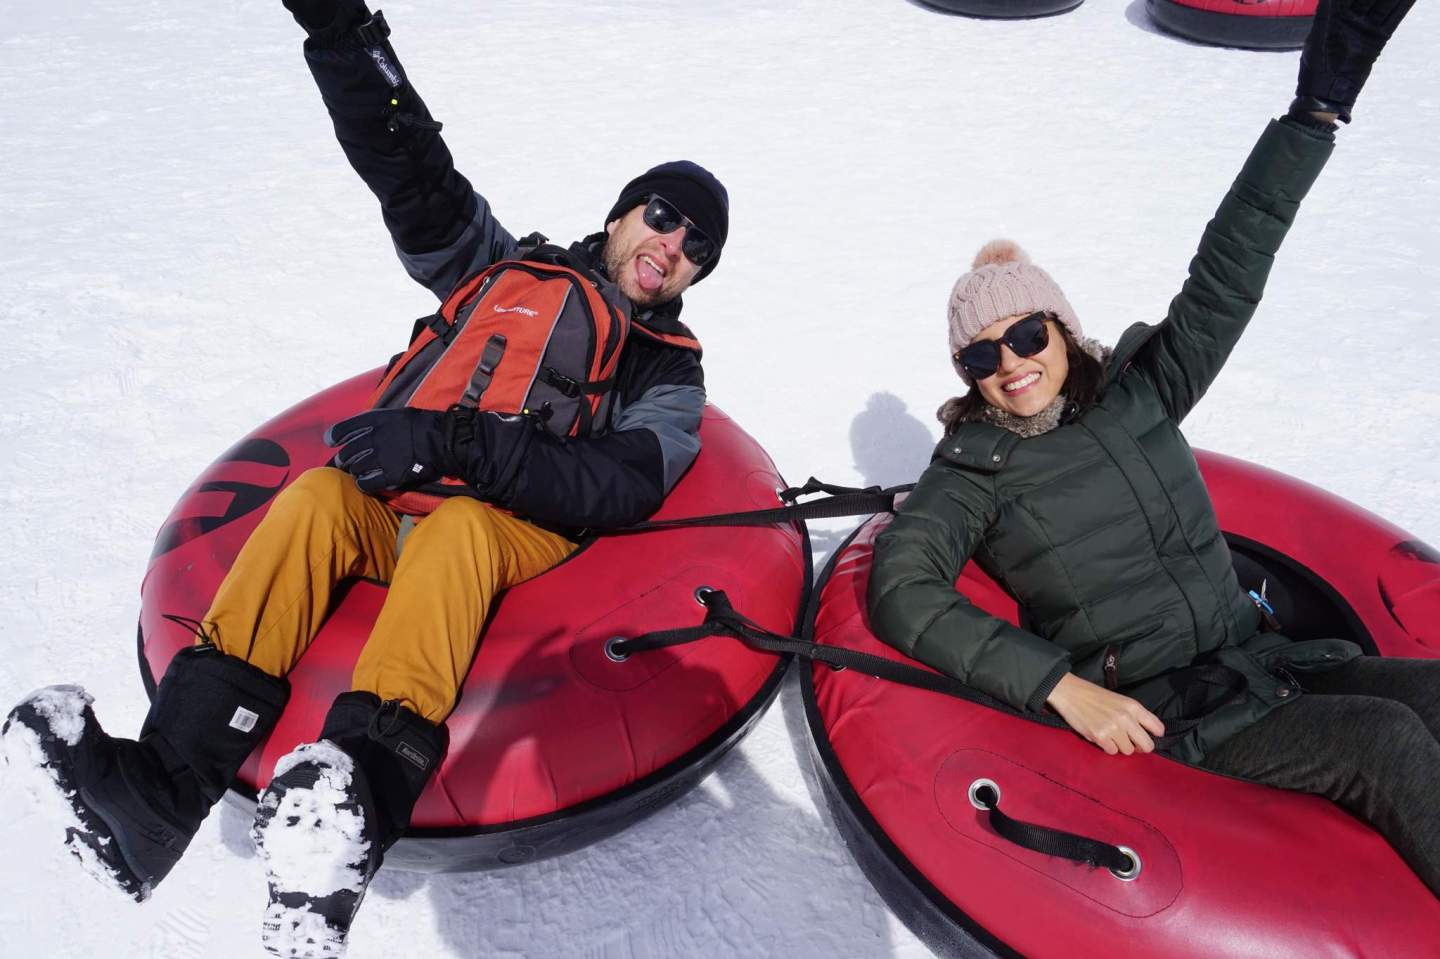 Snow Tubing in South Lake Tahoe Travel Guide - IN BETWEEN LATTES BLOG